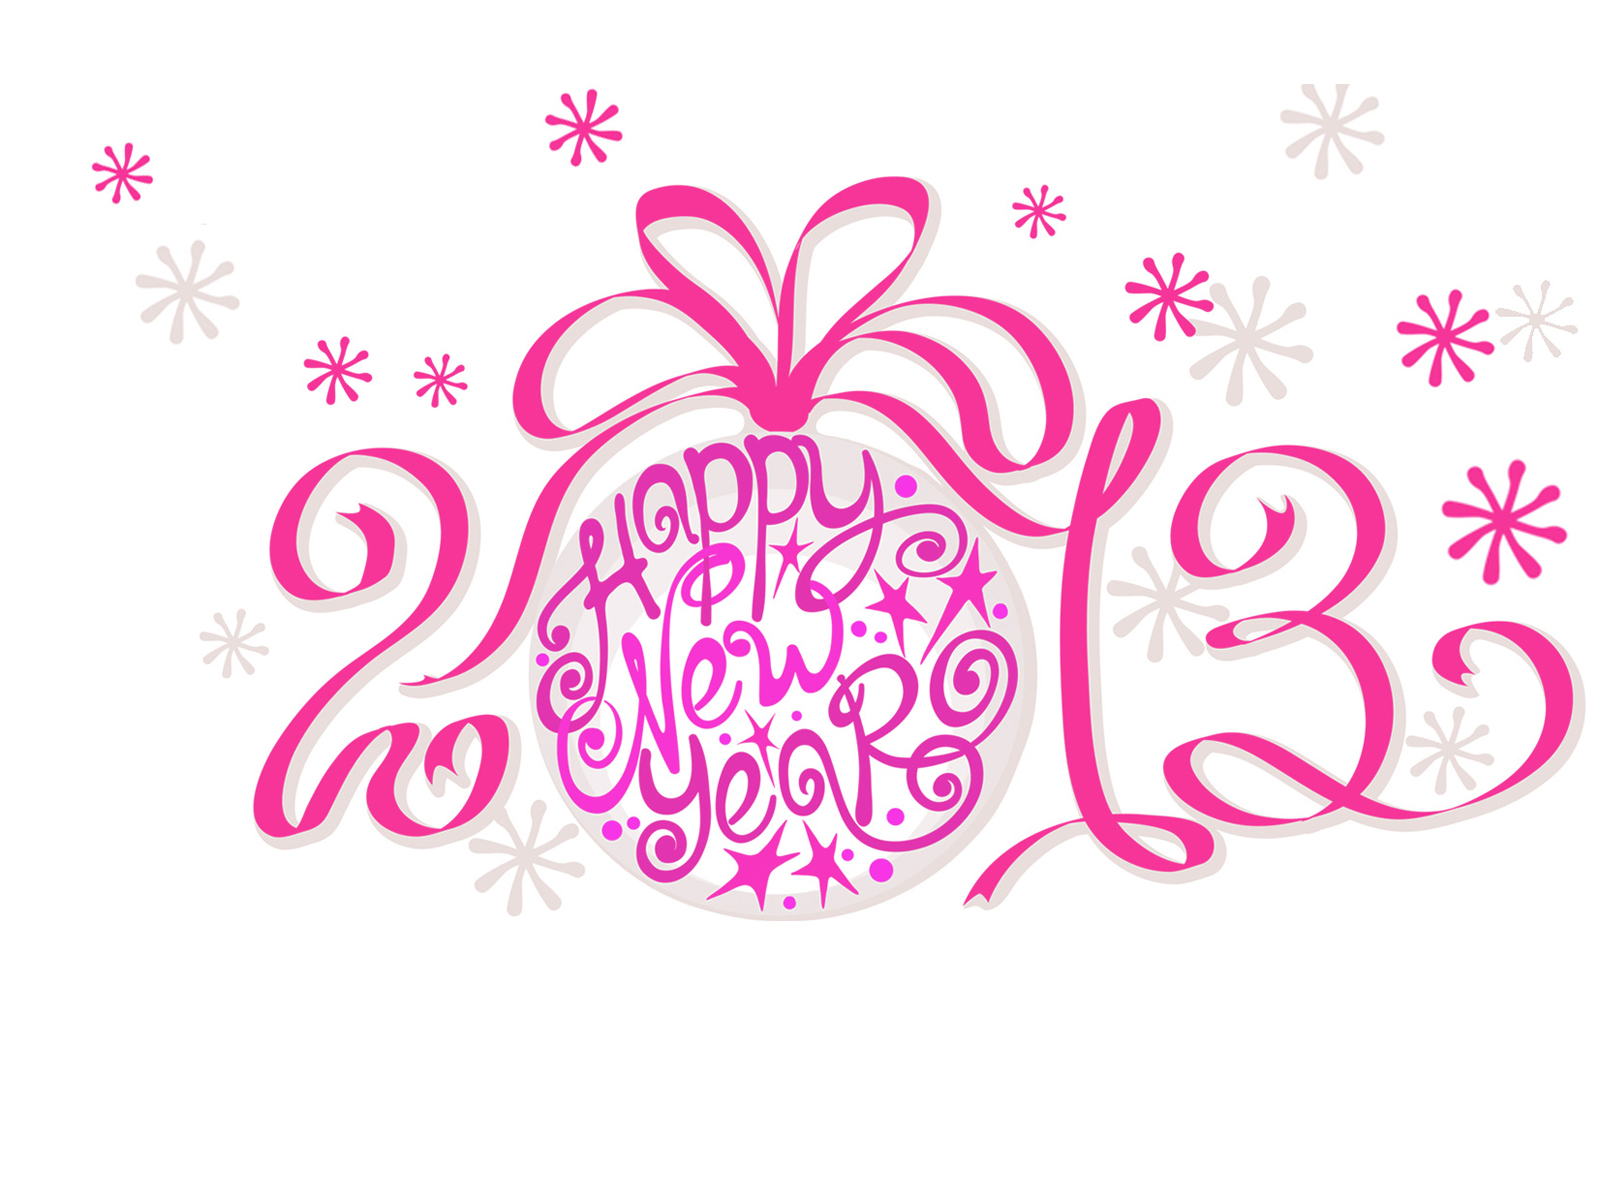 Happy-New-Year-2013-HD-Wallpaper-6